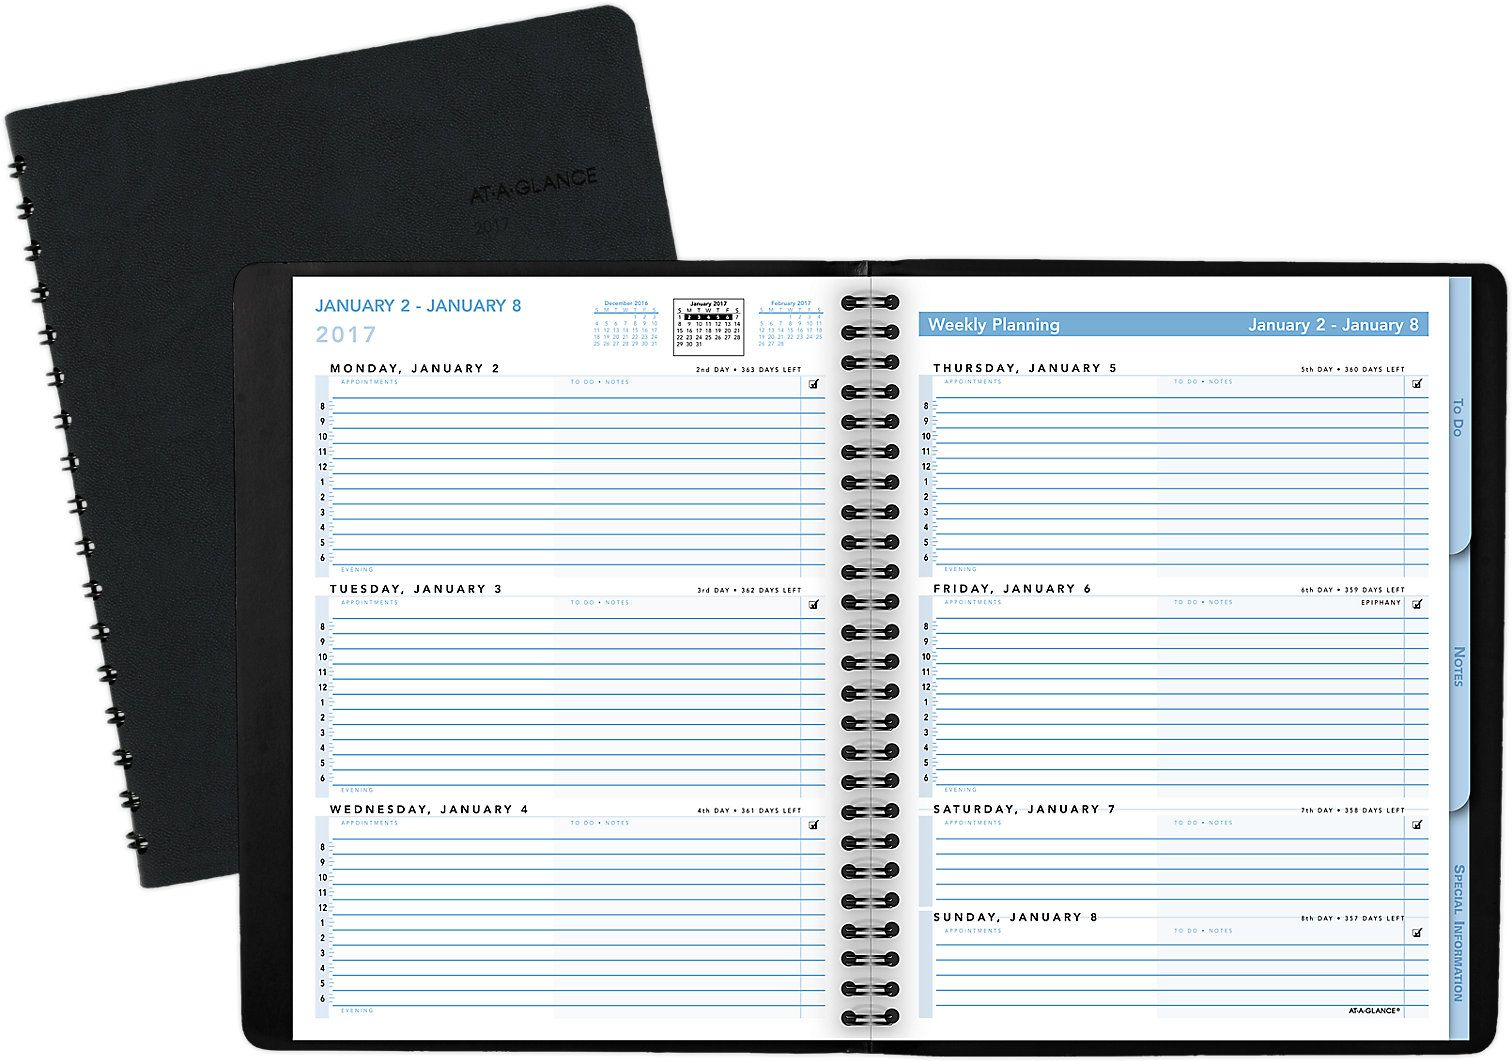 Manage A Busy Schedule With This Daily Appointment BookPlanner